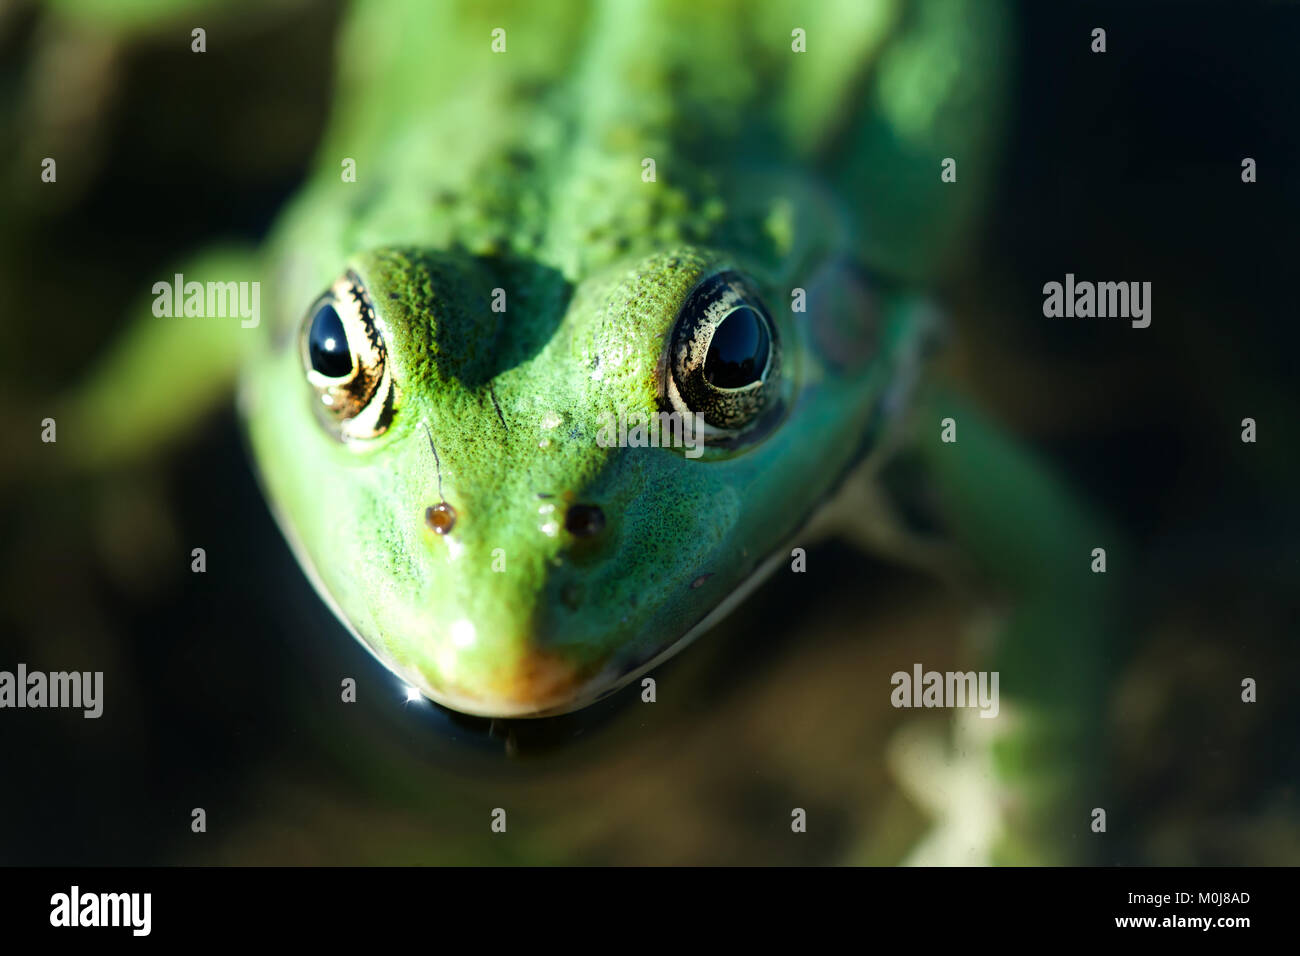 Close up marsh frog green amphibian Pelophylax ridibundus. Up view, selective focus - Stock Image